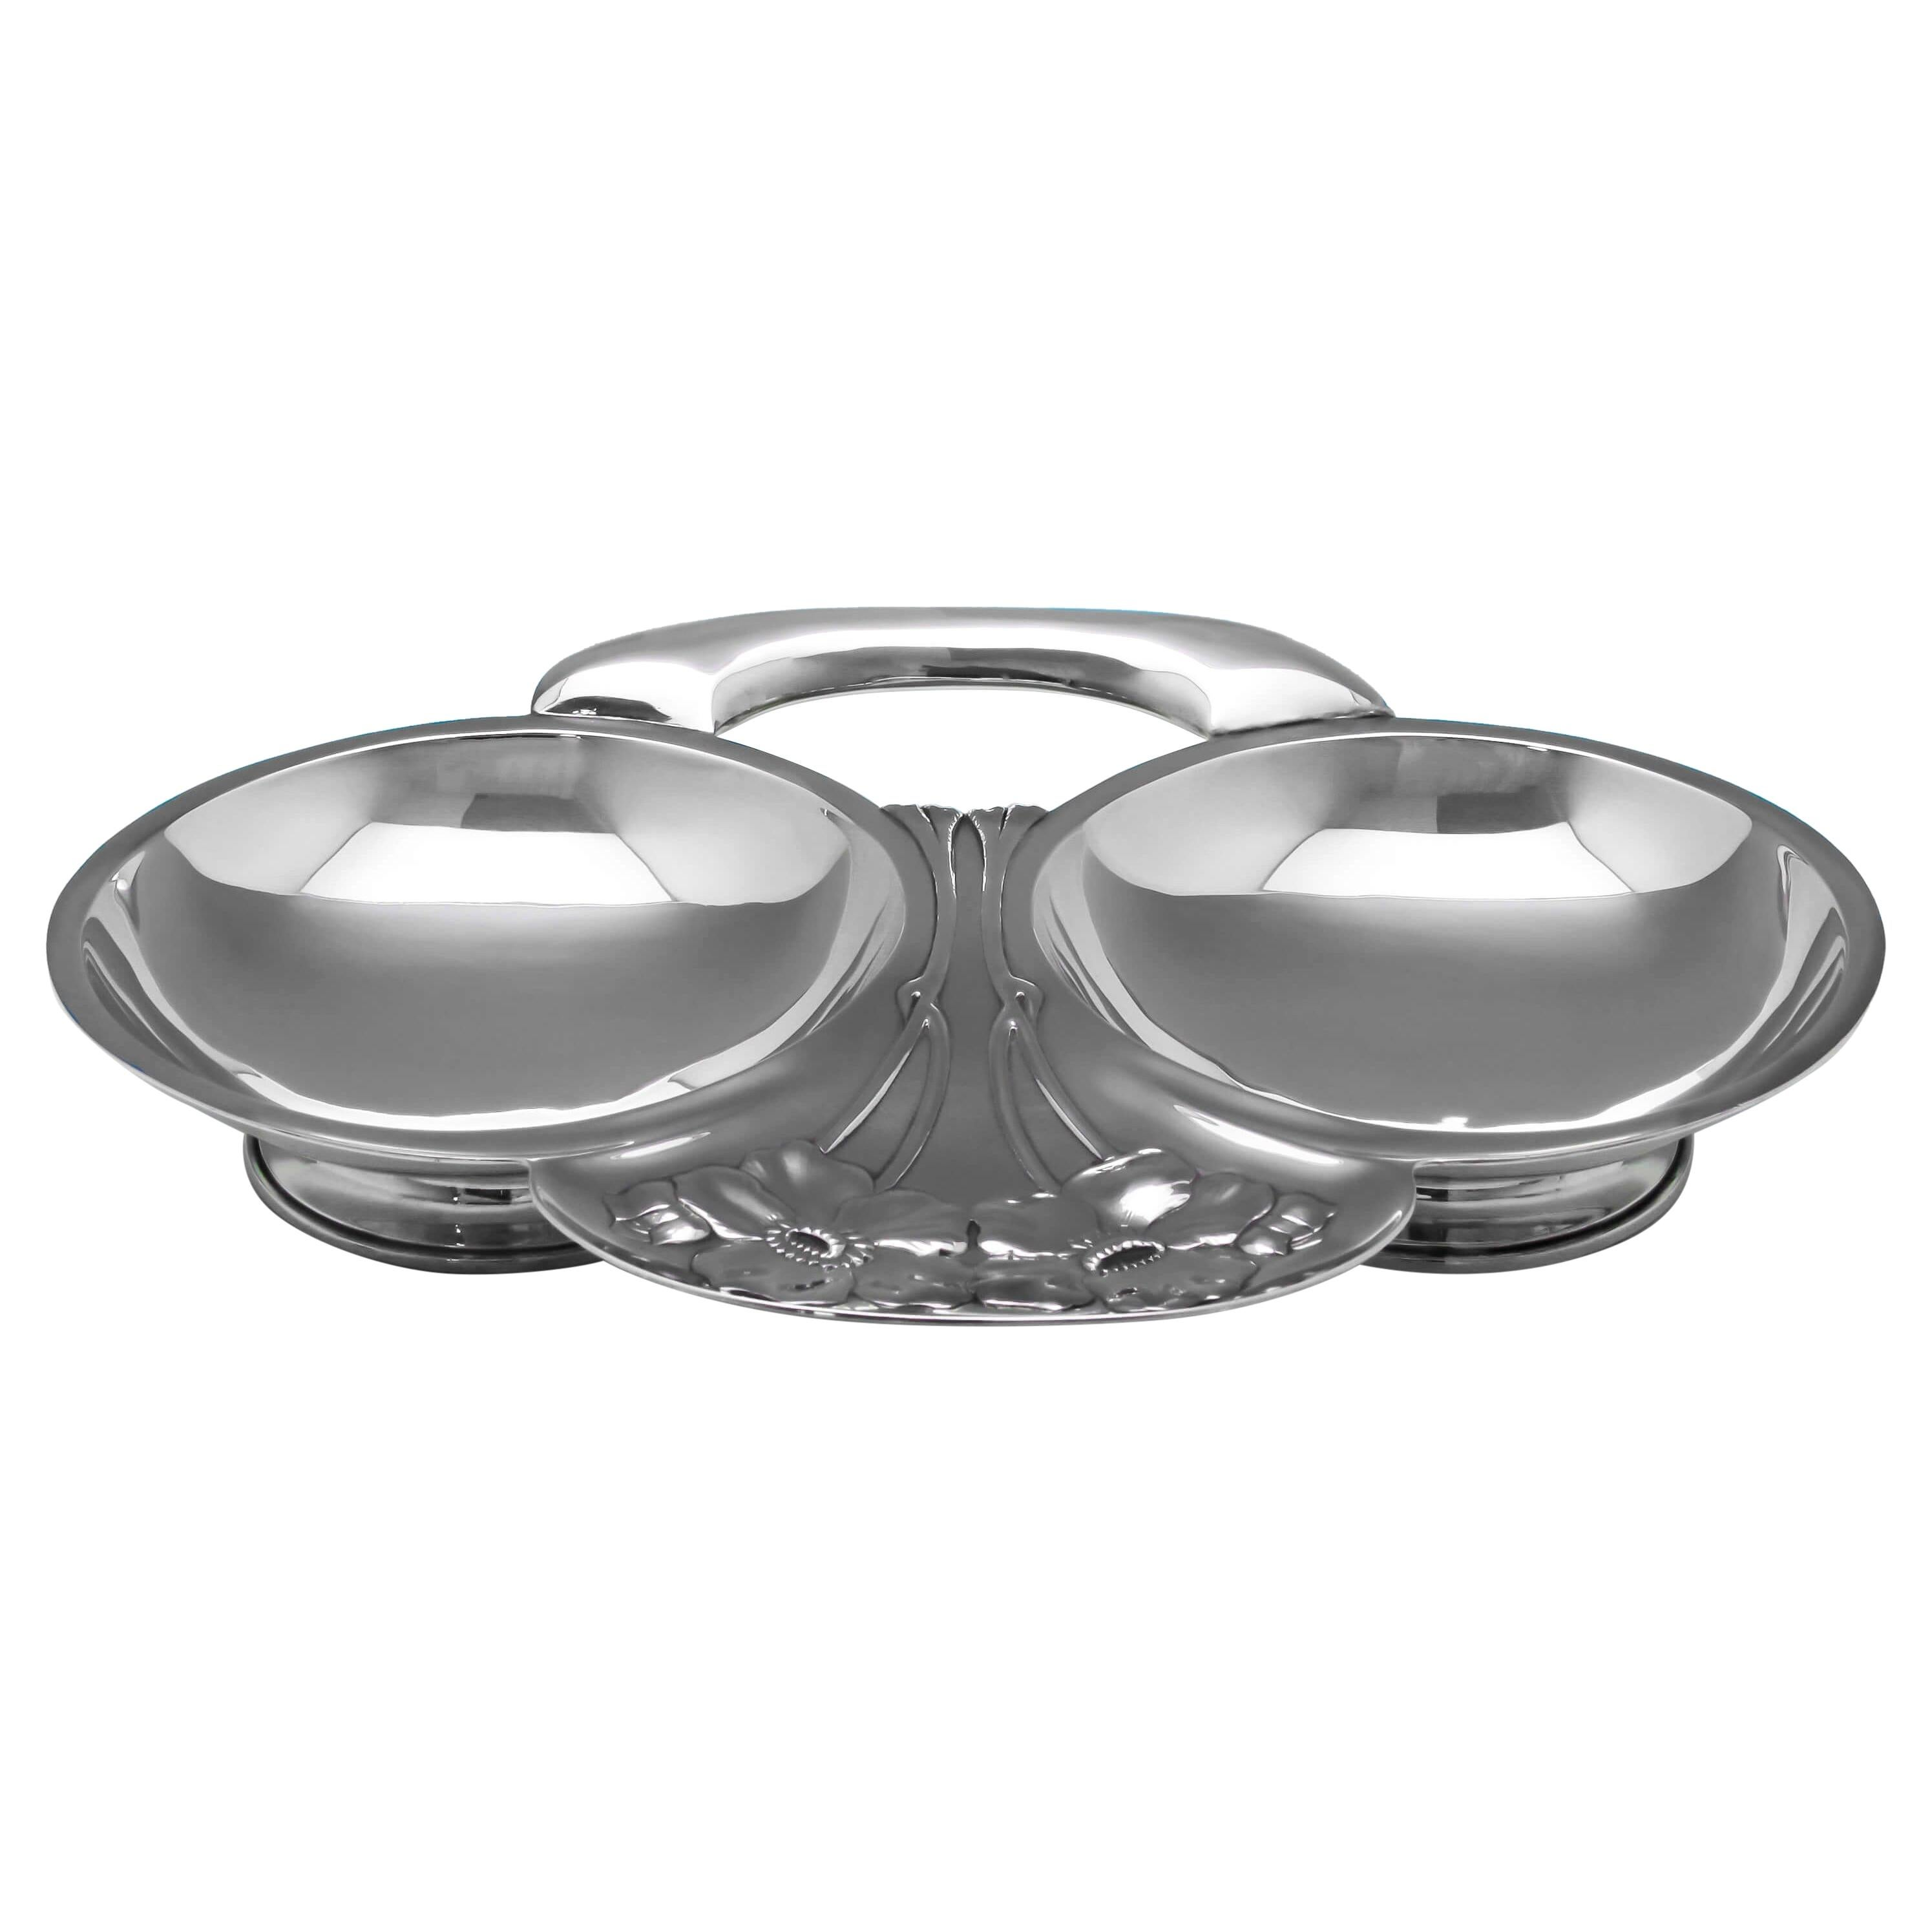 Art Nouveau Antique Sterling Silver Dish Hallmarked in London in 1905